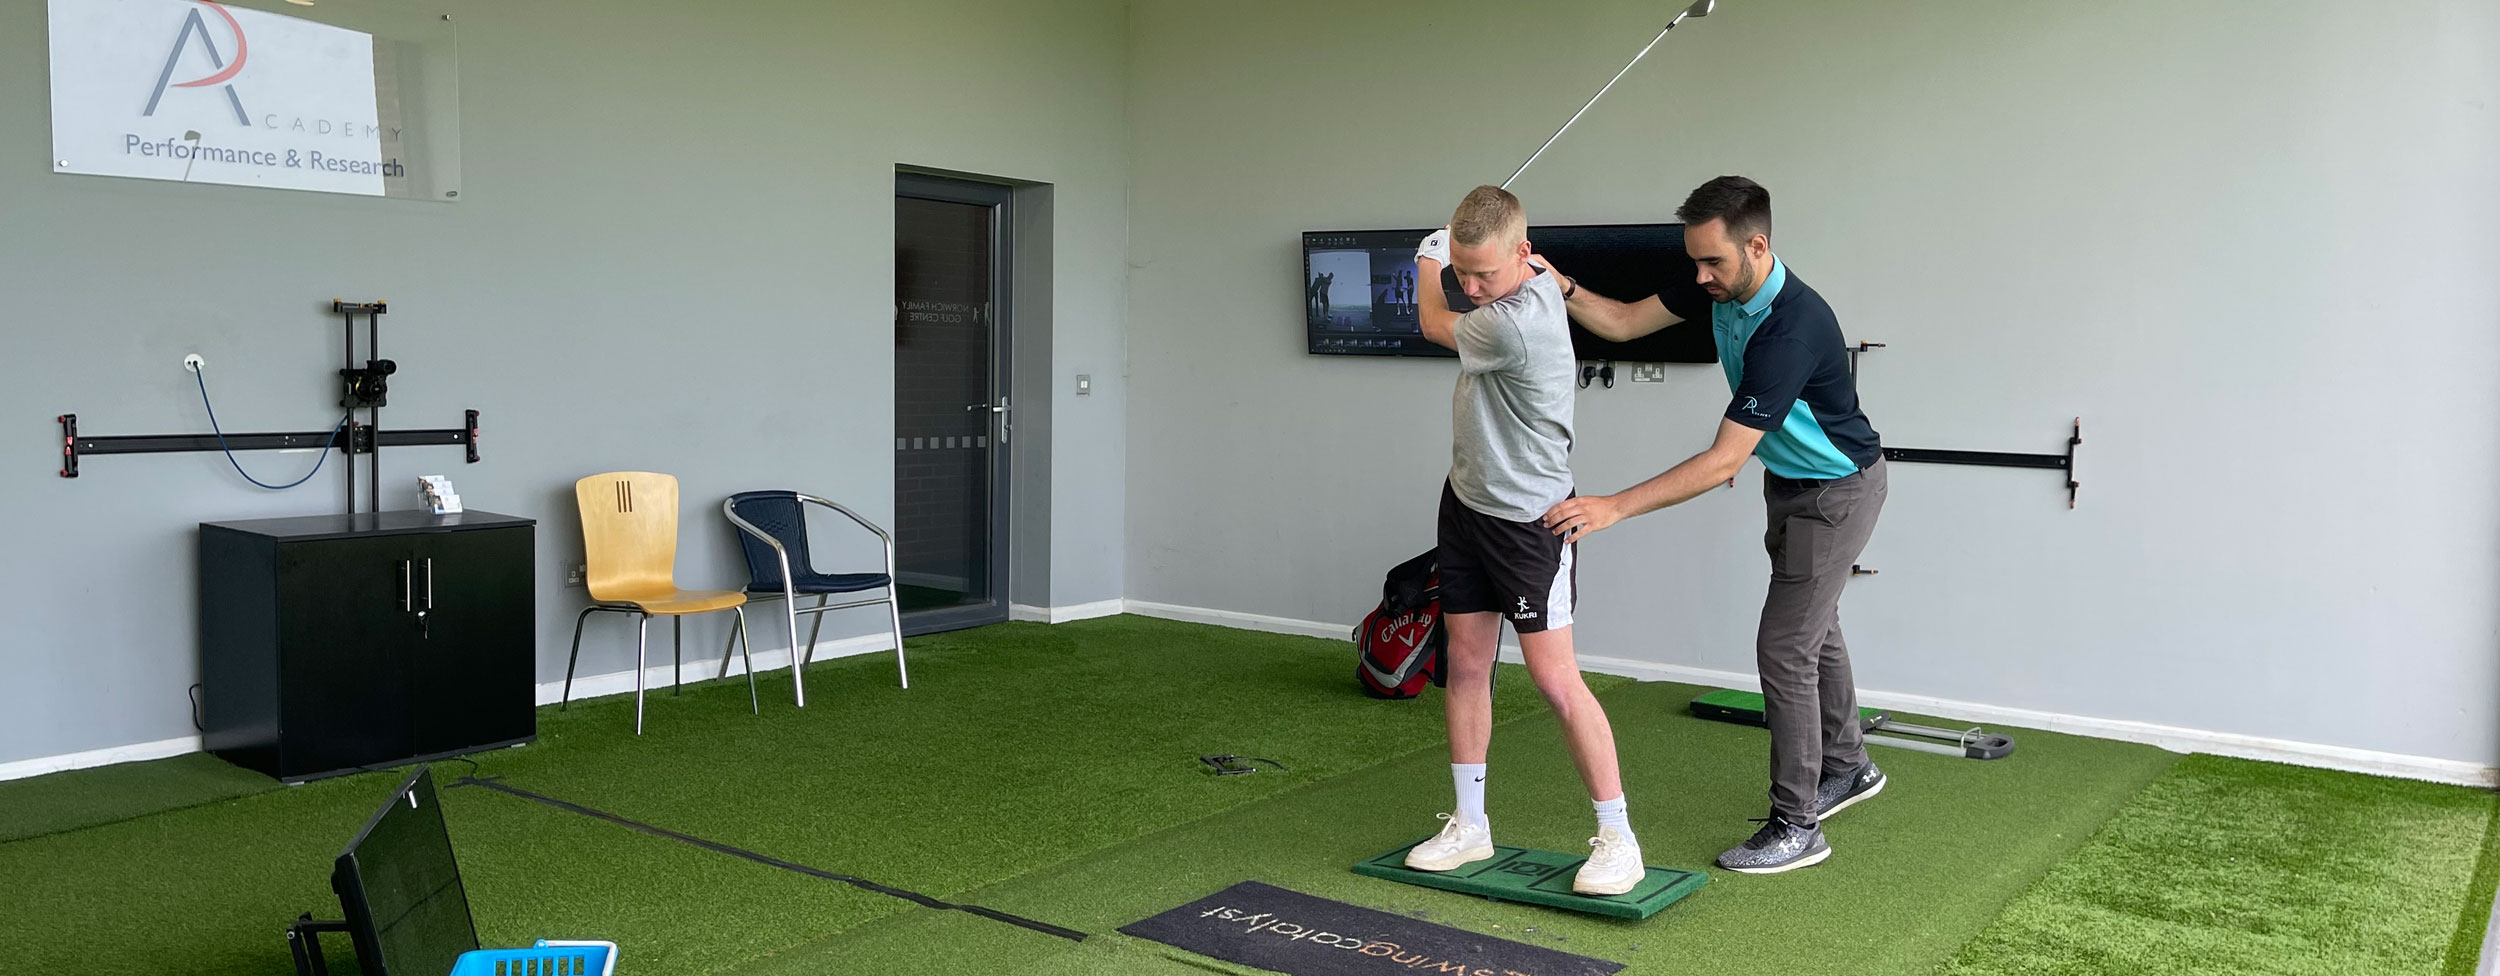 Book a golf tech lesson today at peter field golf shop norwich norfolk